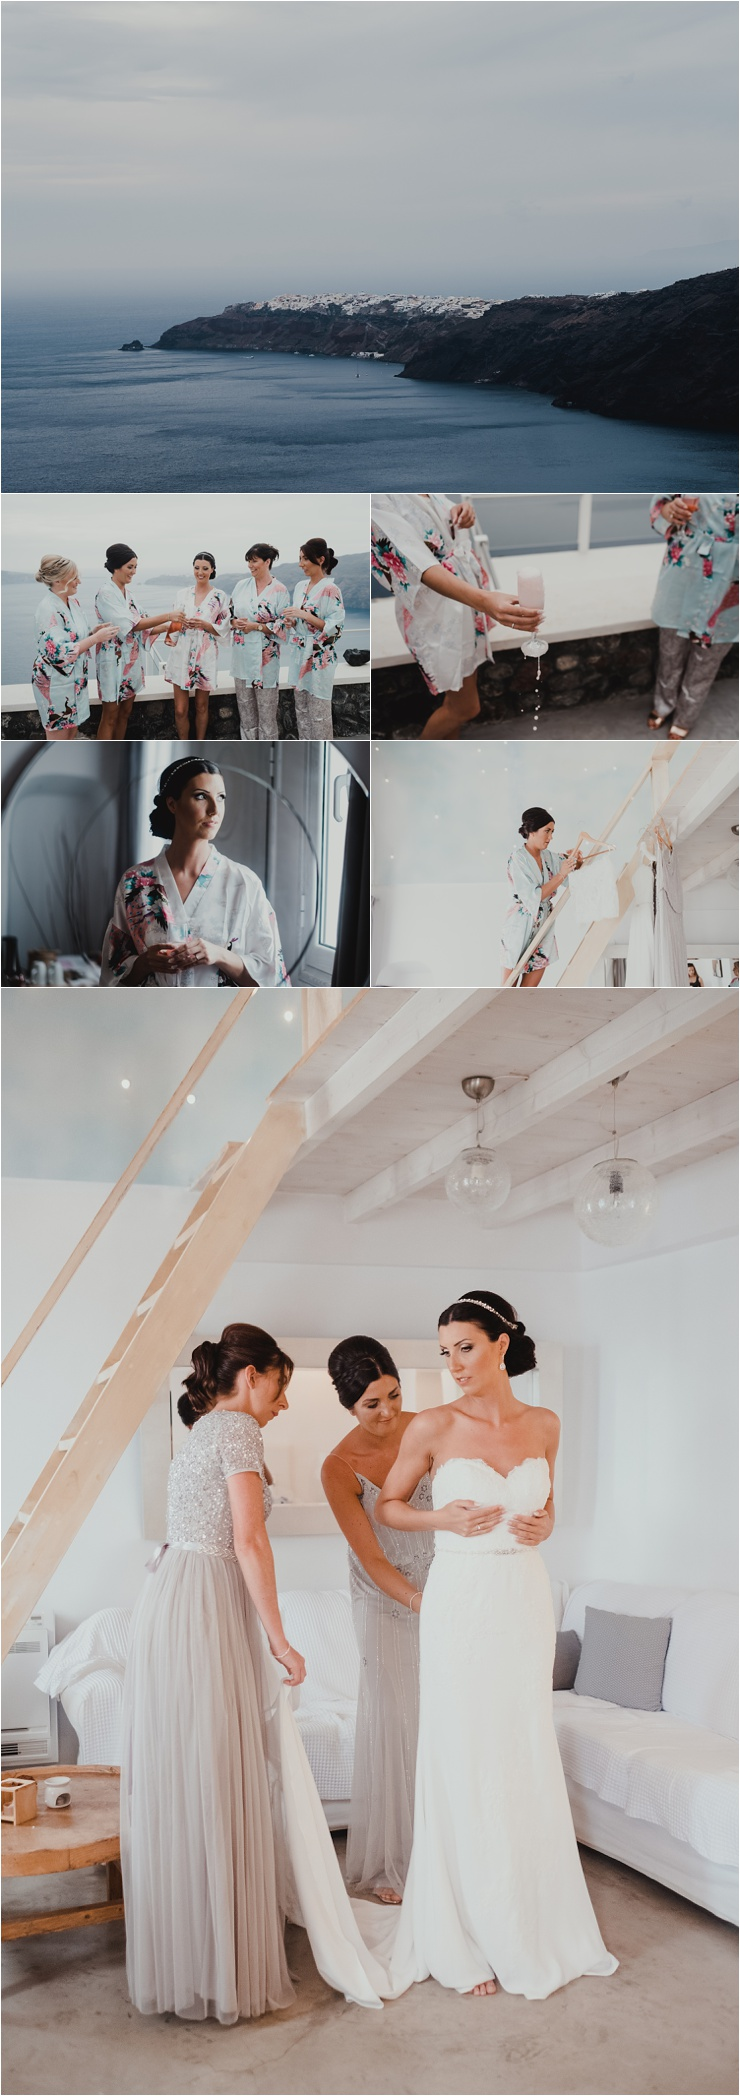 Bridal preparations in Santorini by Tara Lilly Photography